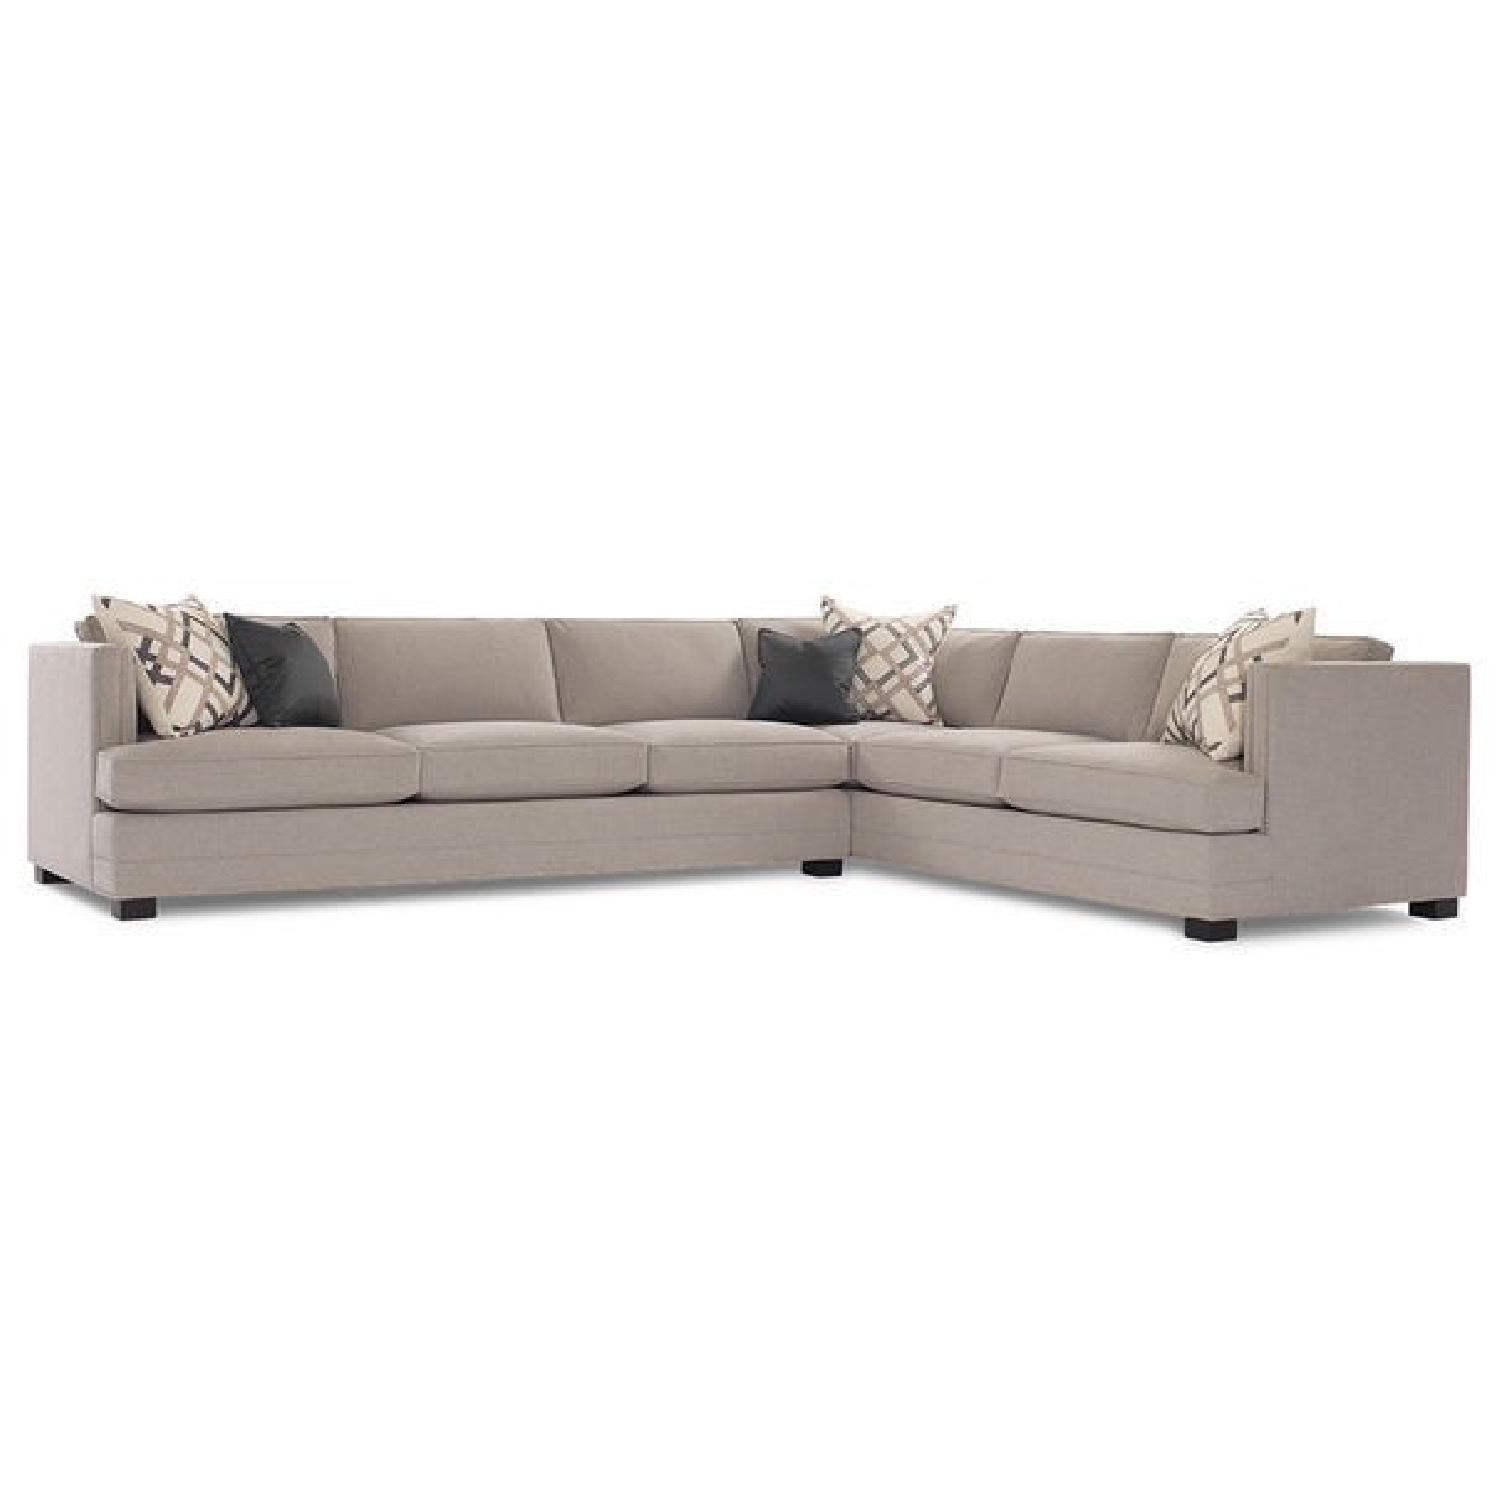 Mitchell Gold + Bob Williams Keaton Sectional in Taupe Grey-0